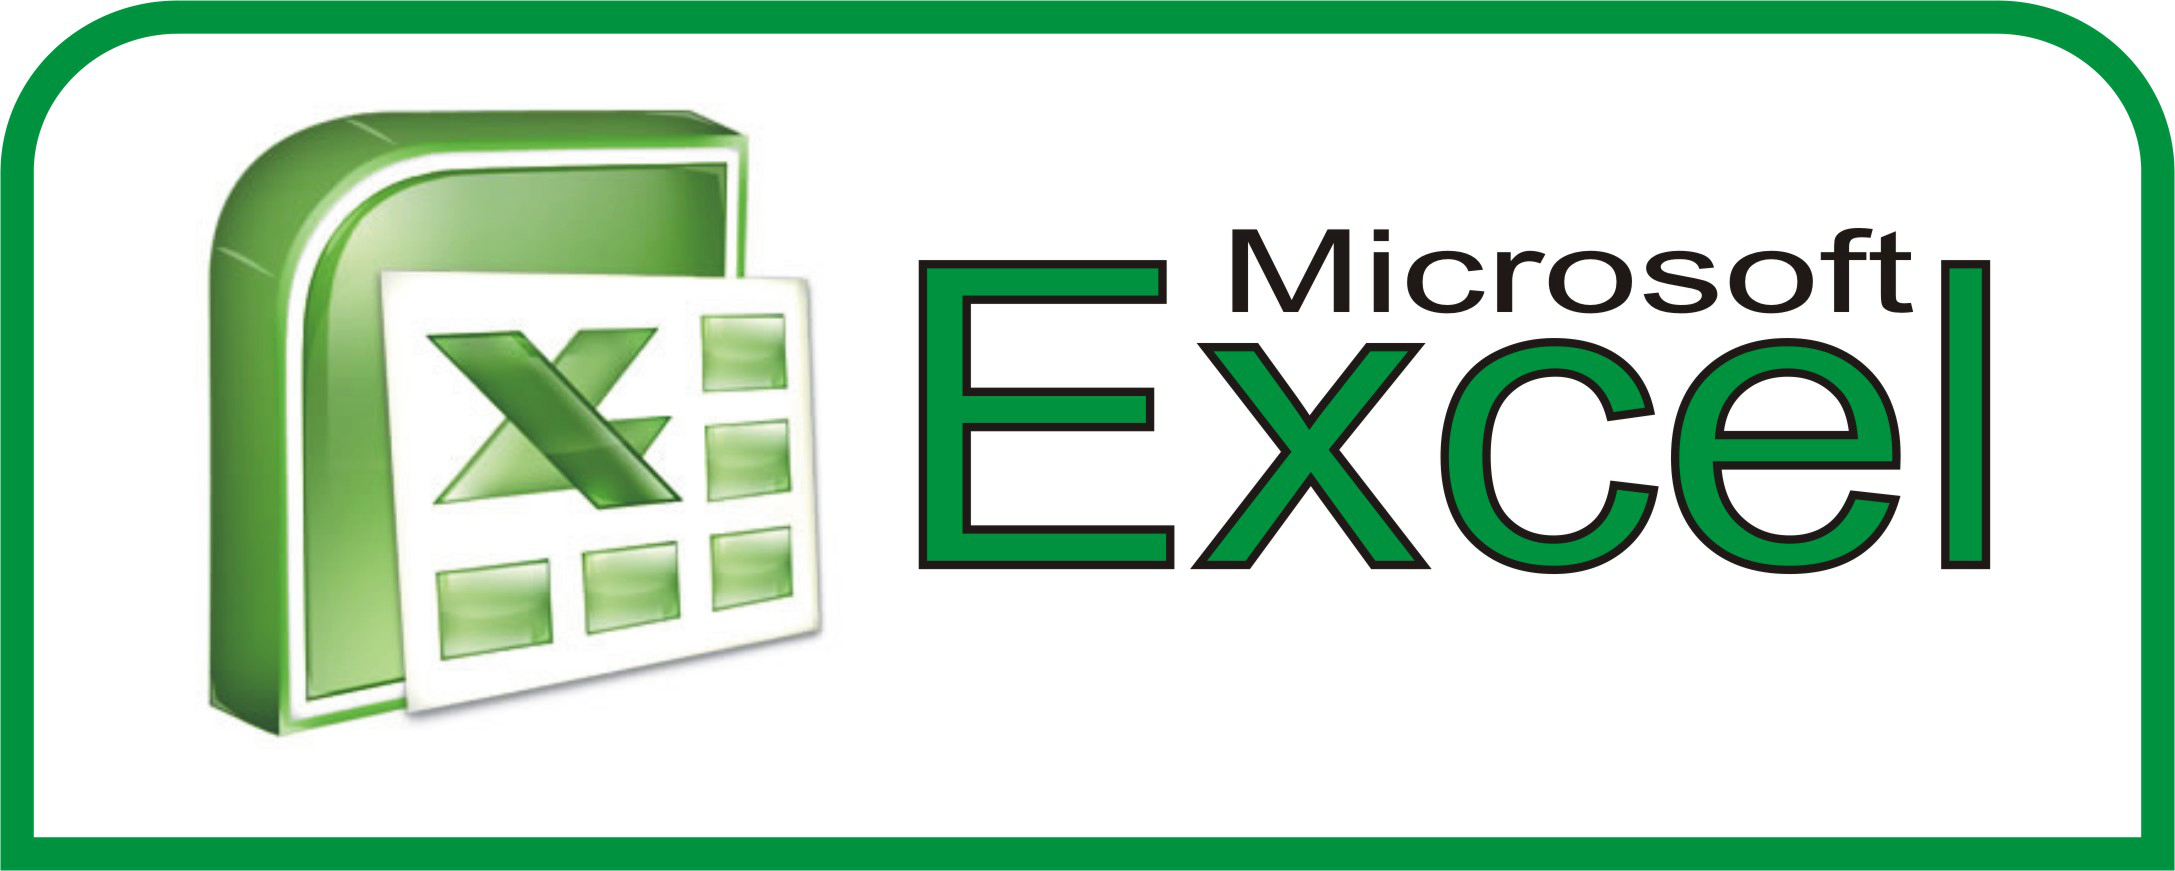 Ediblewildsus  Mesmerizing  Excel Shortcuts You Probably Didnt Know About  Techdissected With Handsome Microsoft Excel Training Courses Besides Excel Break Links Furthermore Square Root On Excel With Lovely Micro Excel Also Excel  If Function In Addition How To Sort Rows In Excel And How To Make A Chart In Excel  As Well As Excel  Additionally How To Find The Average On Excel From Techdissectedcom With Ediblewildsus  Handsome  Excel Shortcuts You Probably Didnt Know About  Techdissected With Lovely Microsoft Excel Training Courses Besides Excel Break Links Furthermore Square Root On Excel And Mesmerizing Micro Excel Also Excel  If Function In Addition How To Sort Rows In Excel From Techdissectedcom